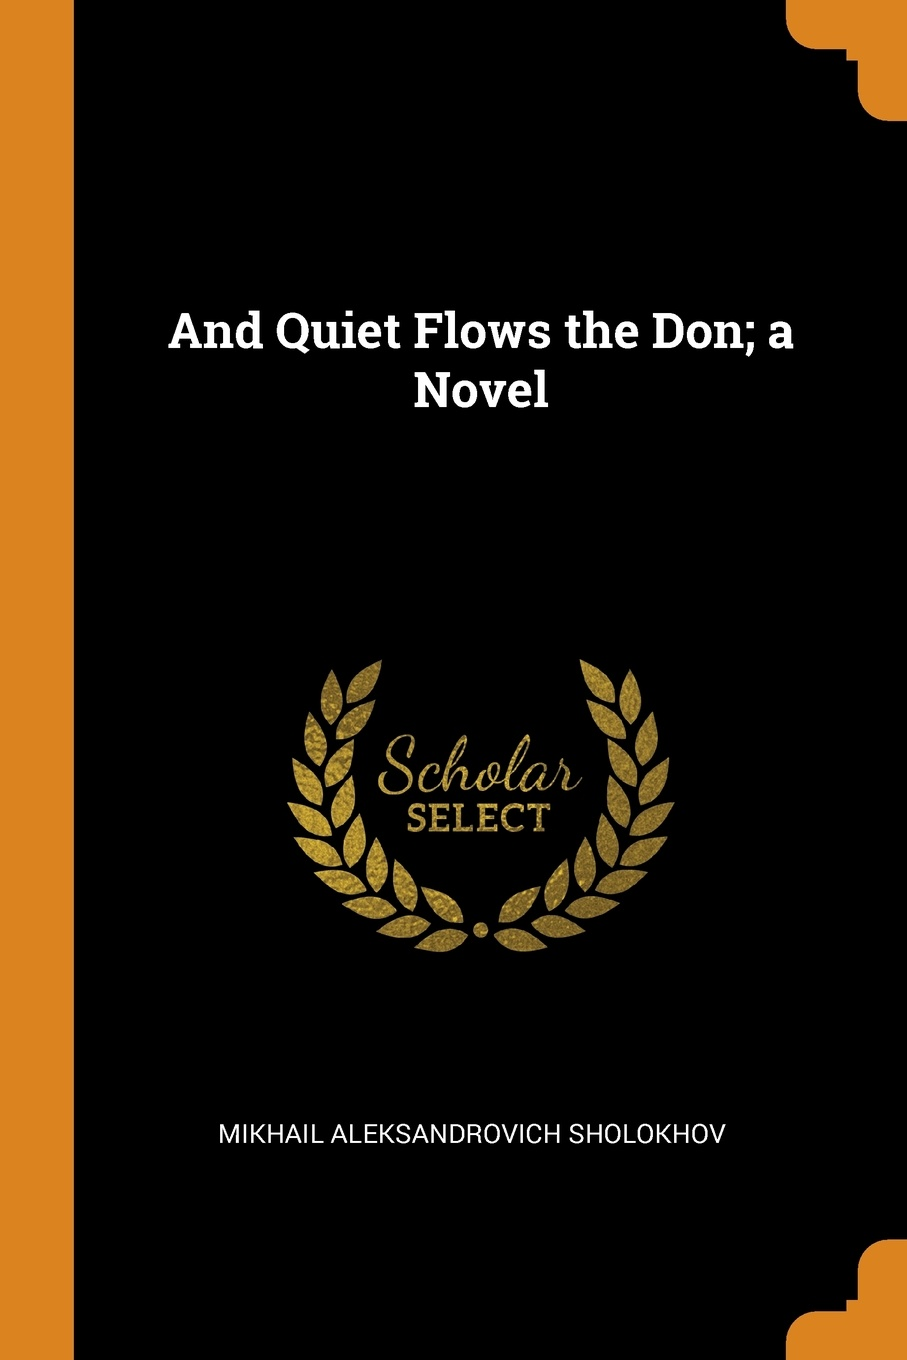 And Quiet Flows the Don; a Novel